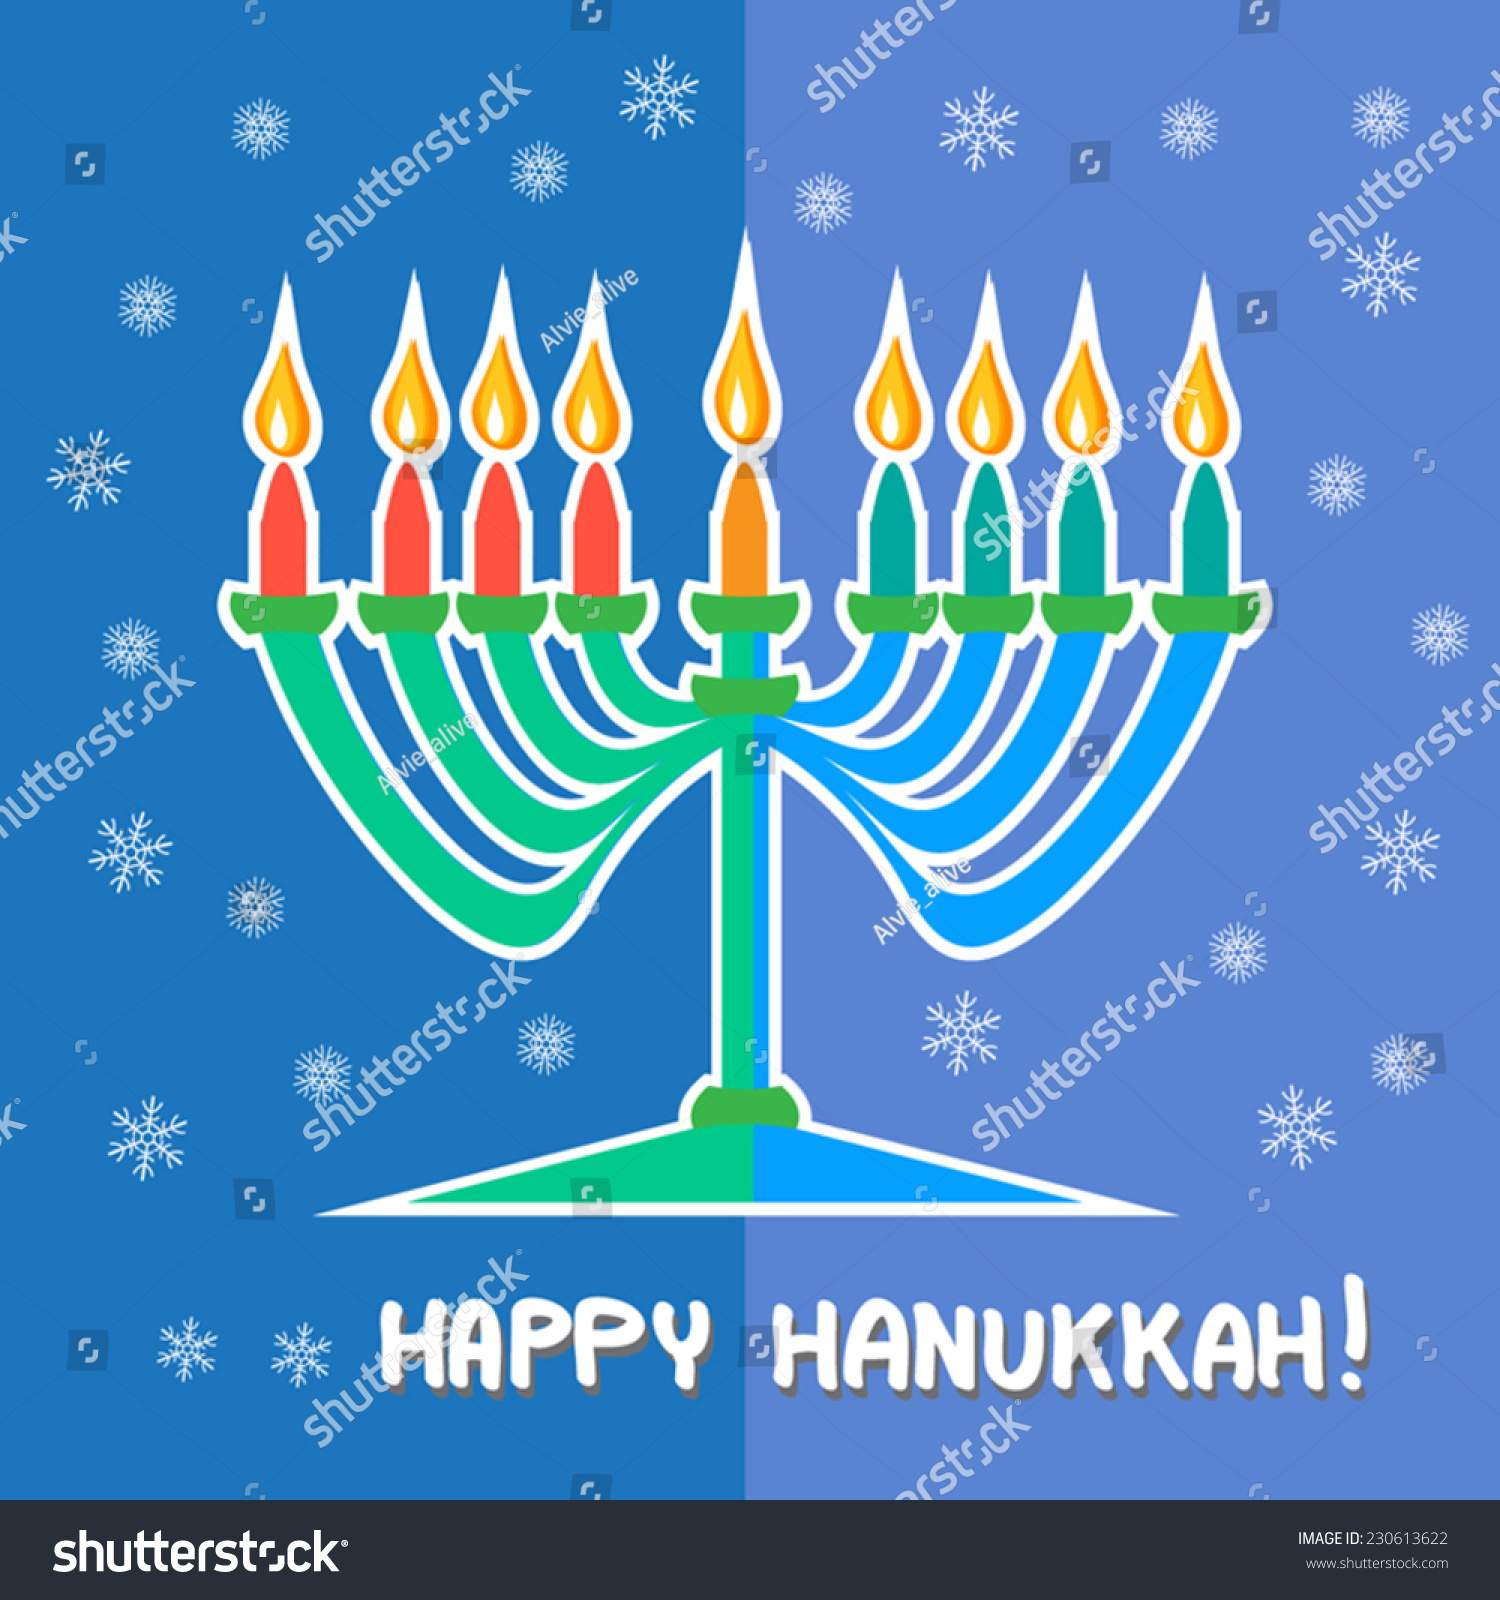 List Of Synonyms And Antonyms Of The Word Hanukkah Greetings